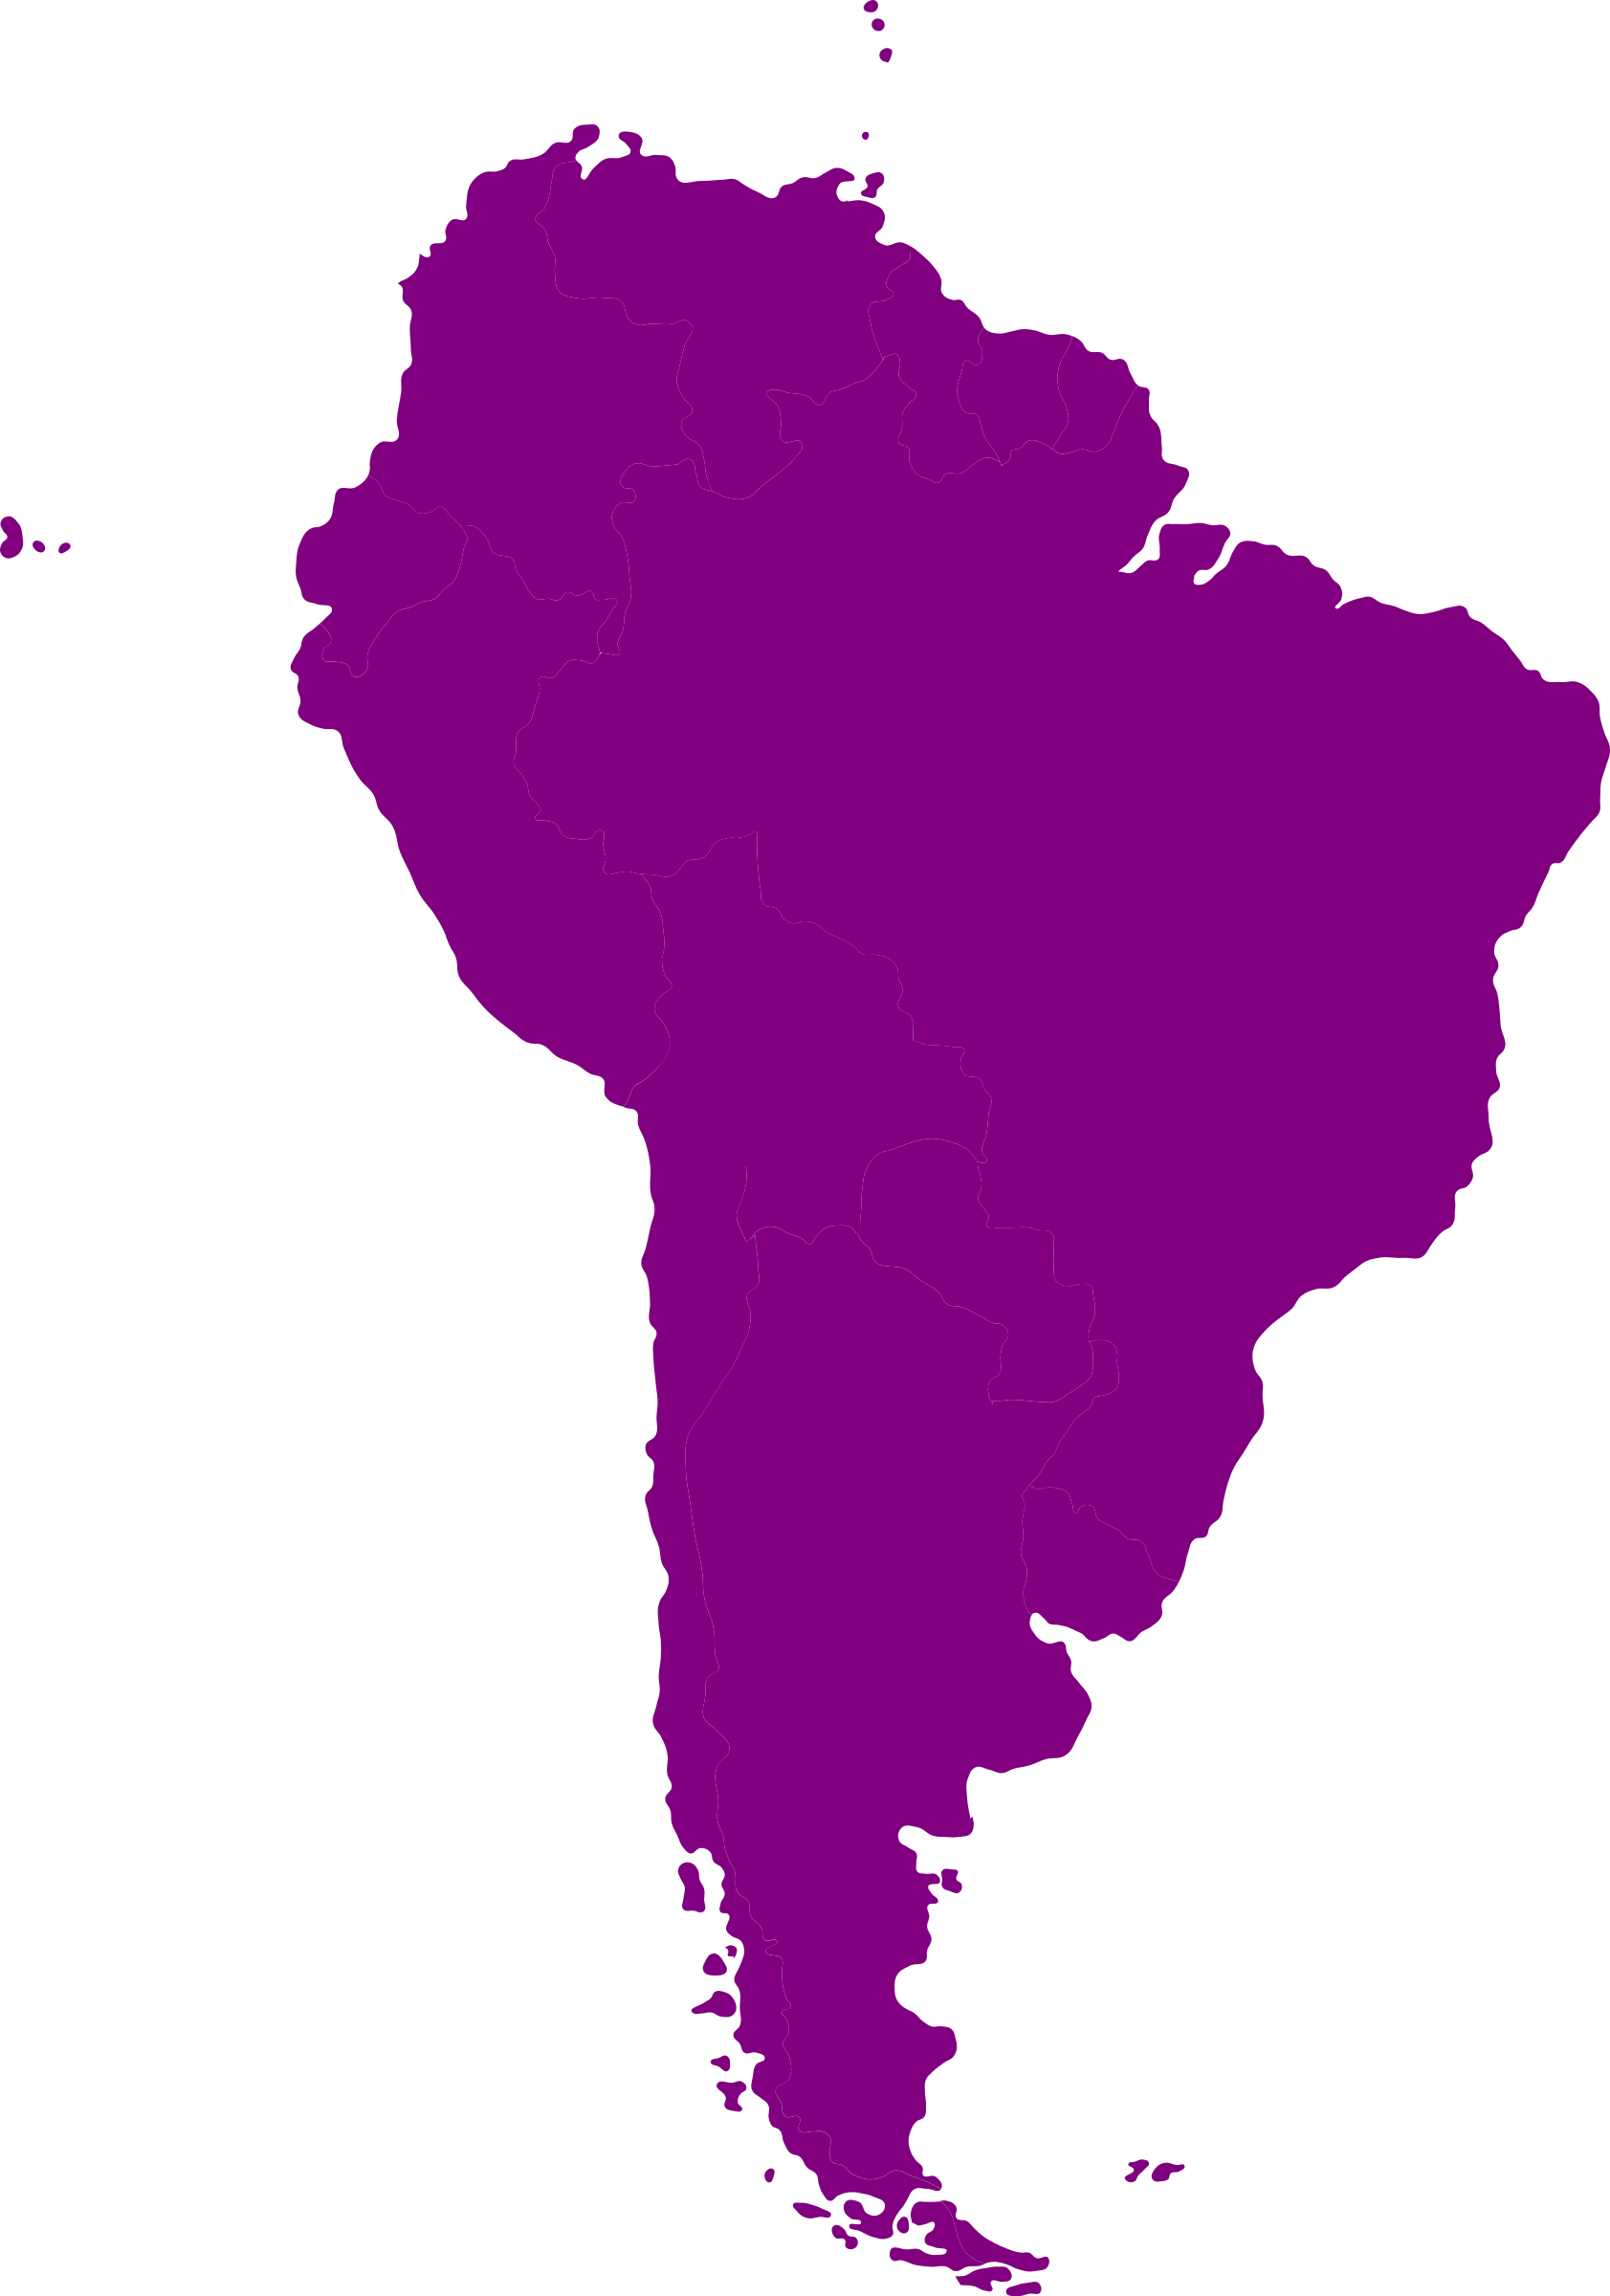 South-American continent by Iyo